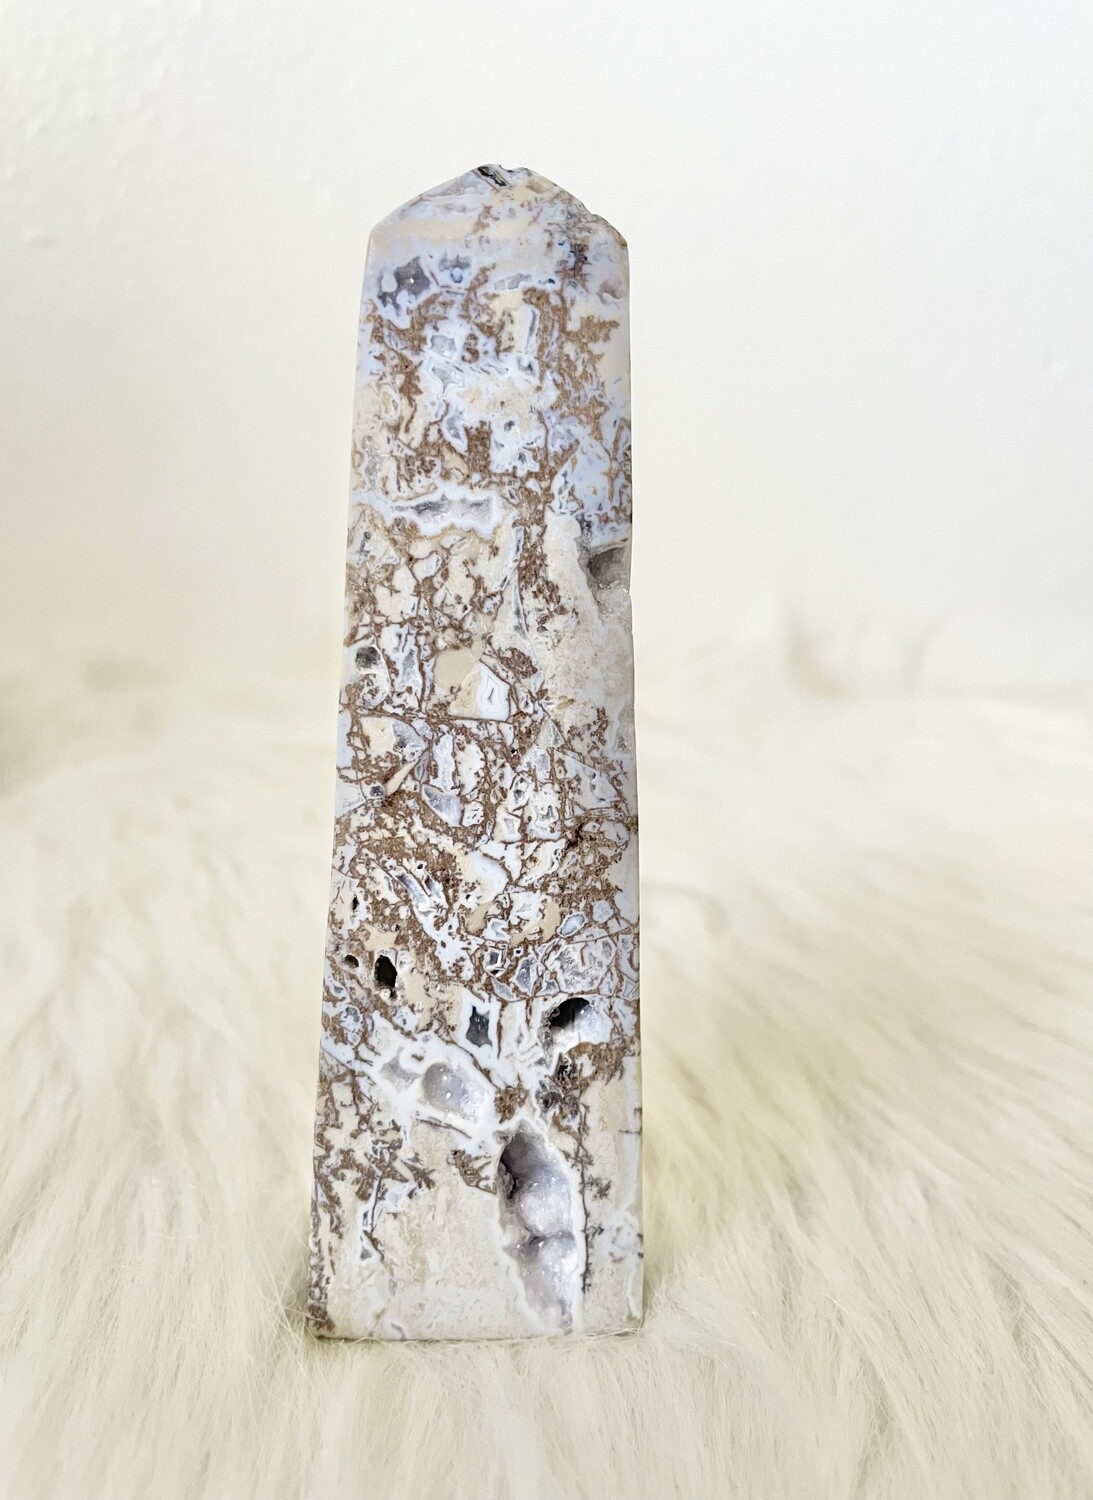 Mushroom Trails Blue Dendritic Agate Tower with Druzy